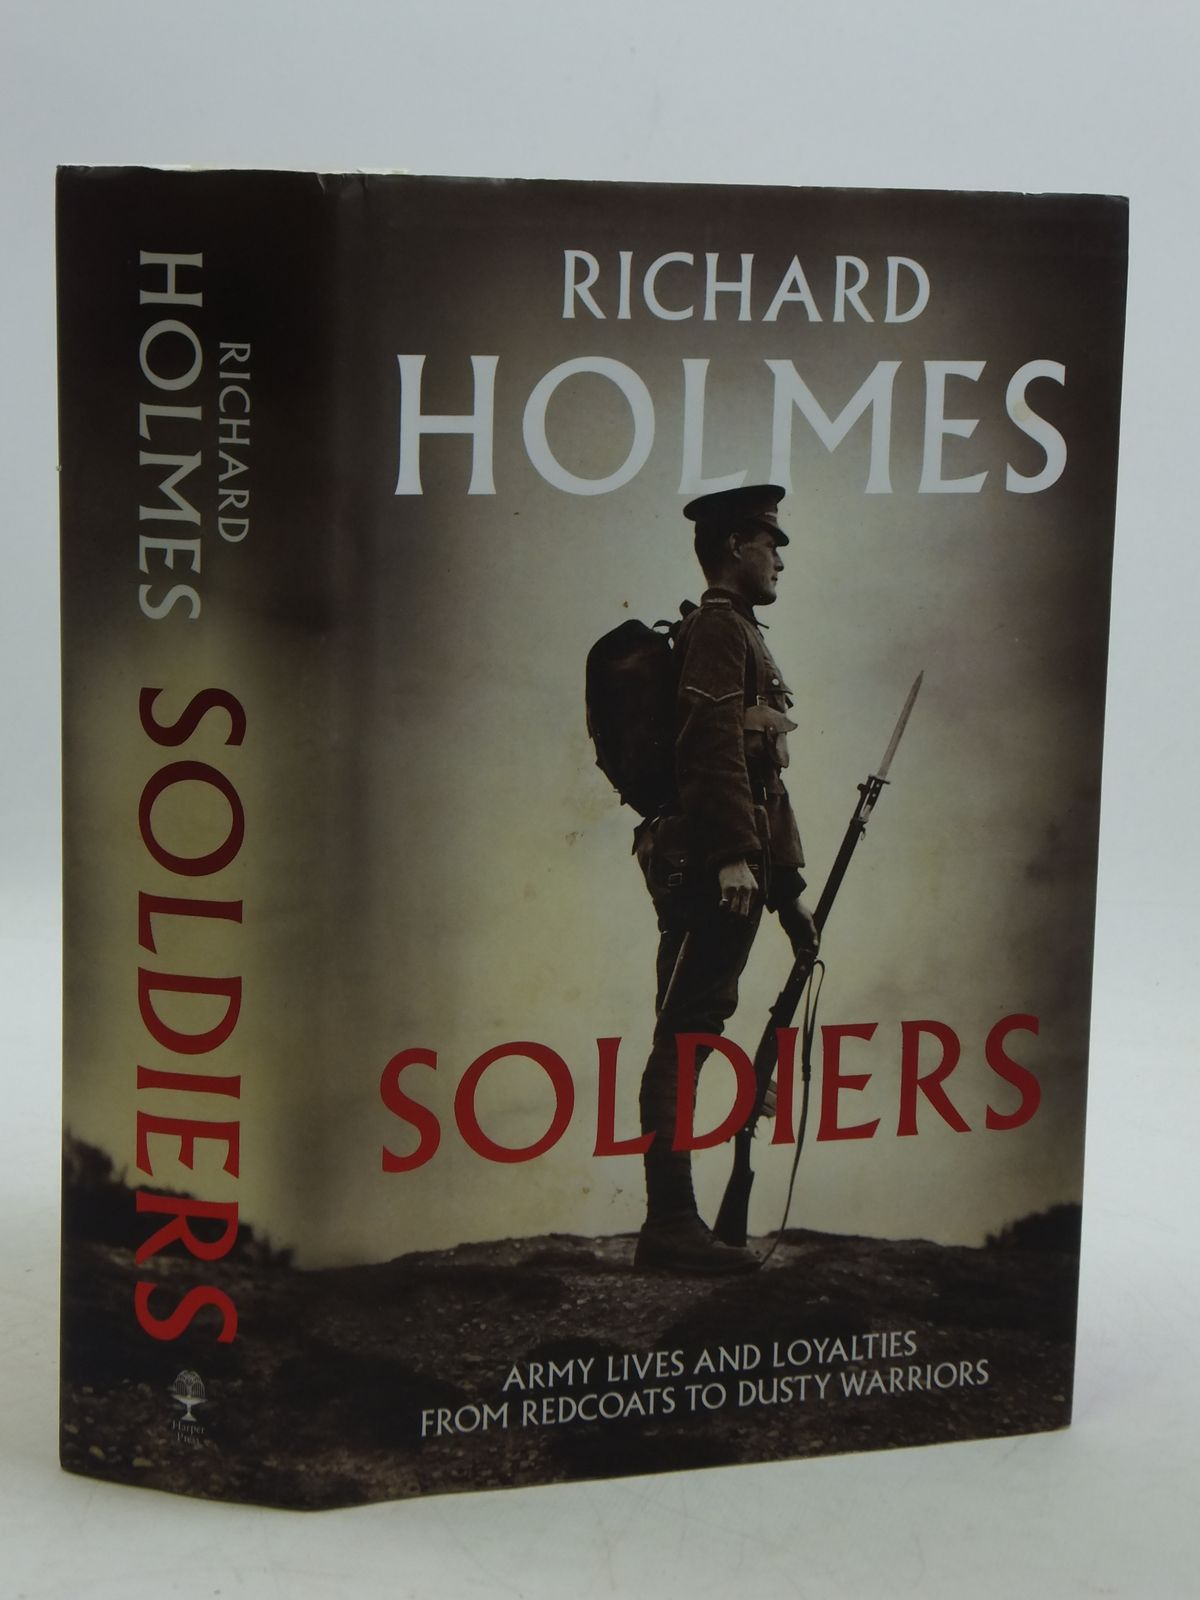 Photo of SOLDIERS ARMY LIVES AND LOYALTIES FROM REDCOATS TO DUSTY WARRIORS written by Holmes, Richard published by Harper Press (STOCK CODE: 2110724)  for sale by Stella & Rose's Books